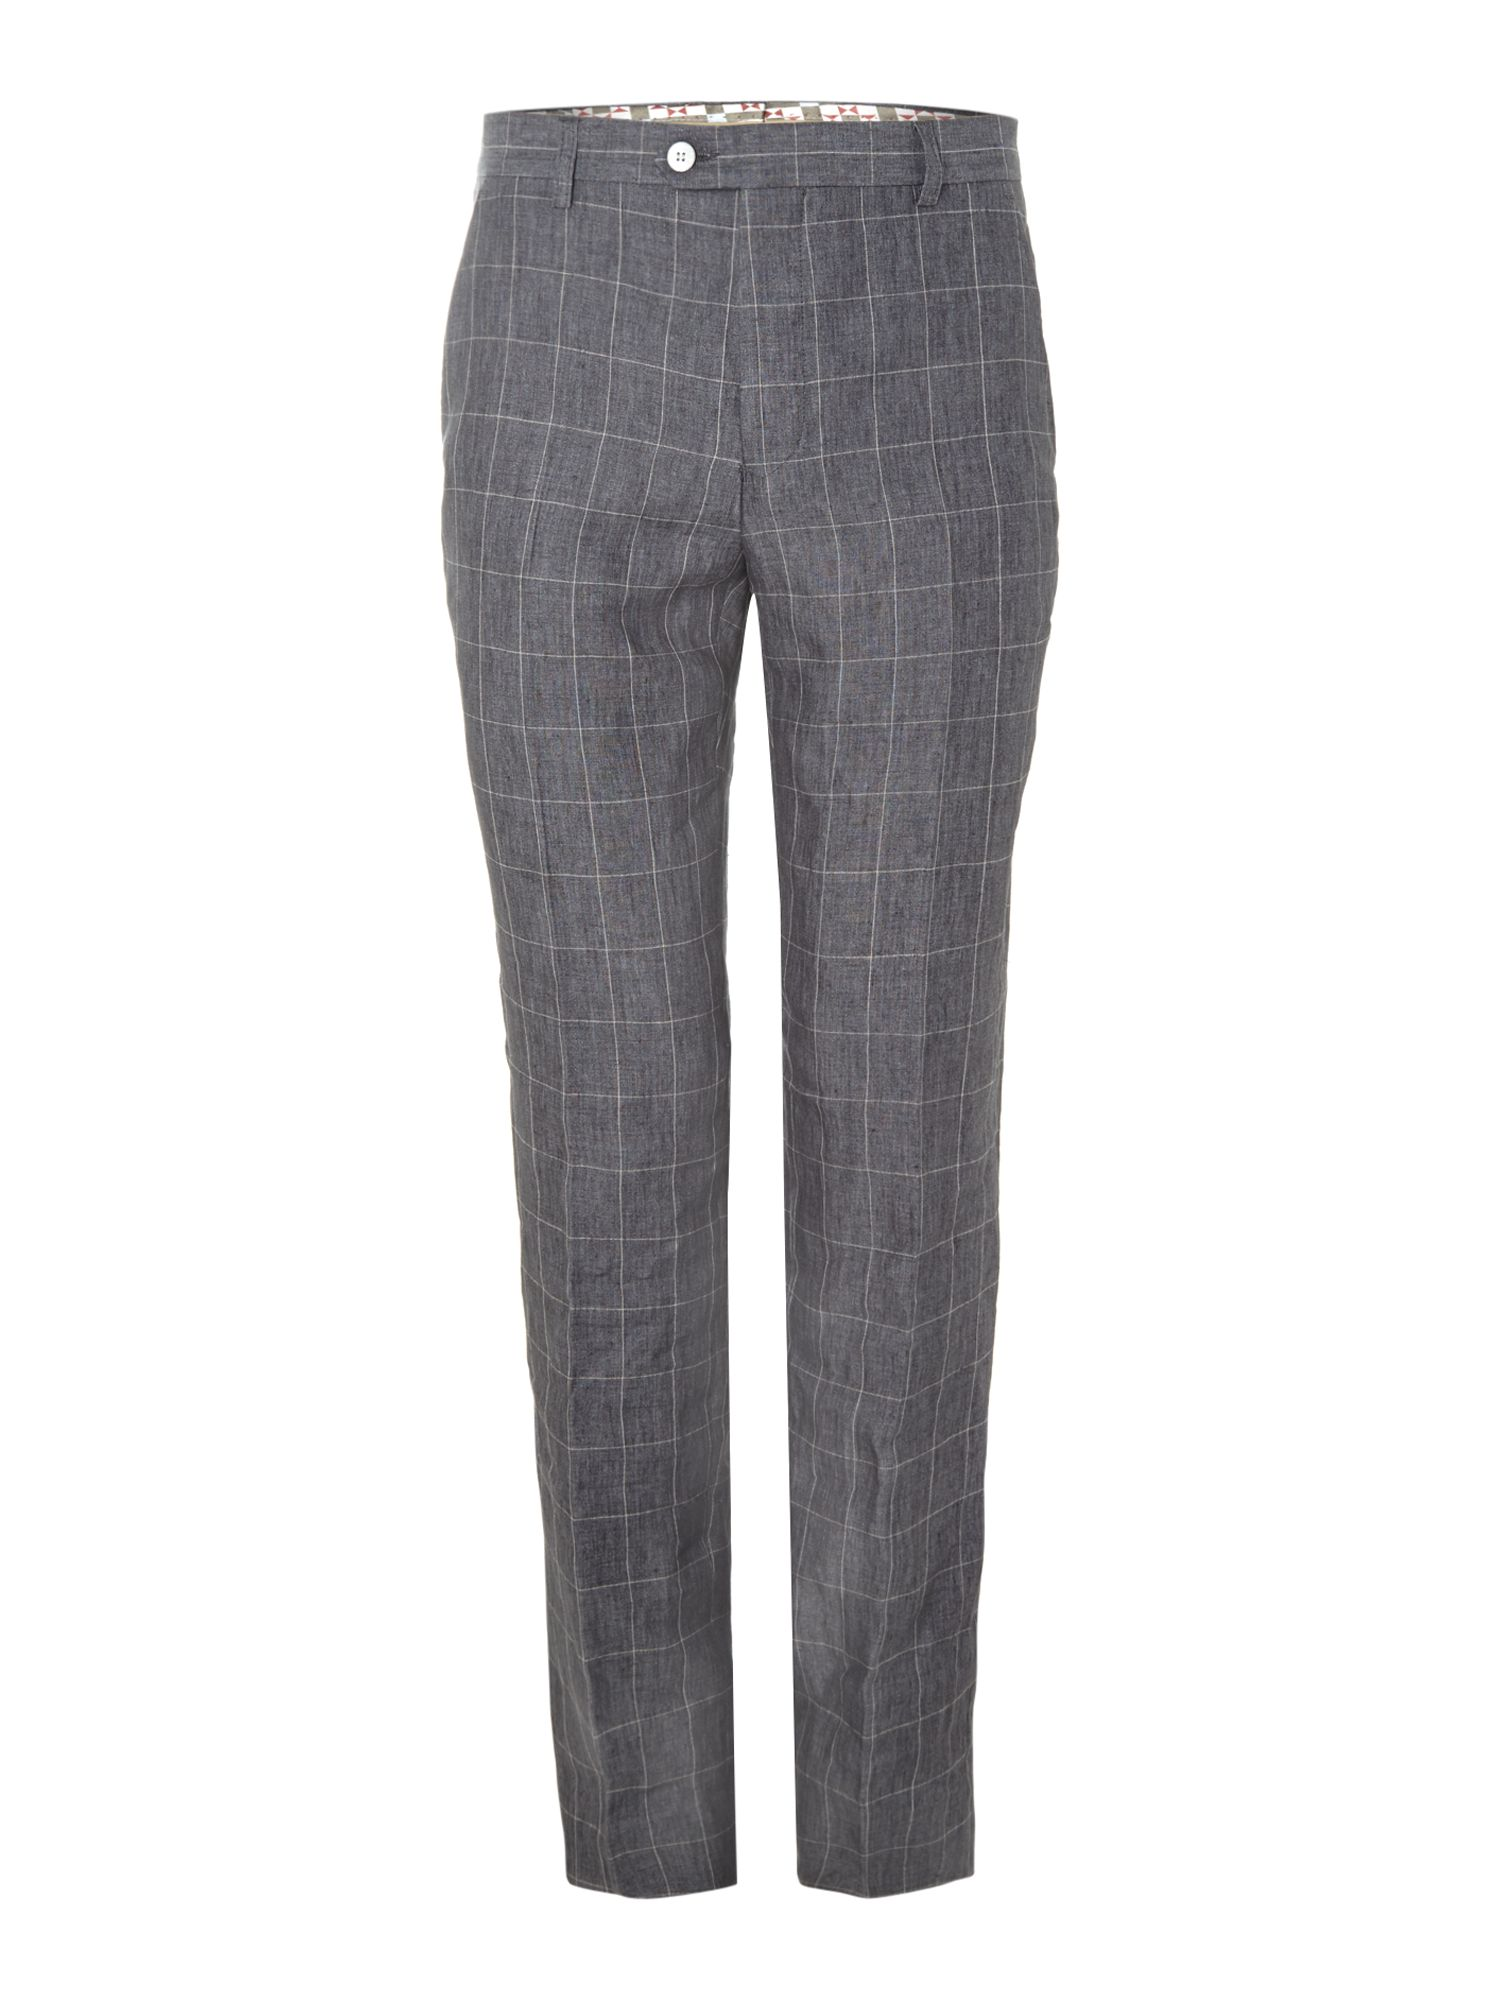 Pietro slim fit windowpane check trouser